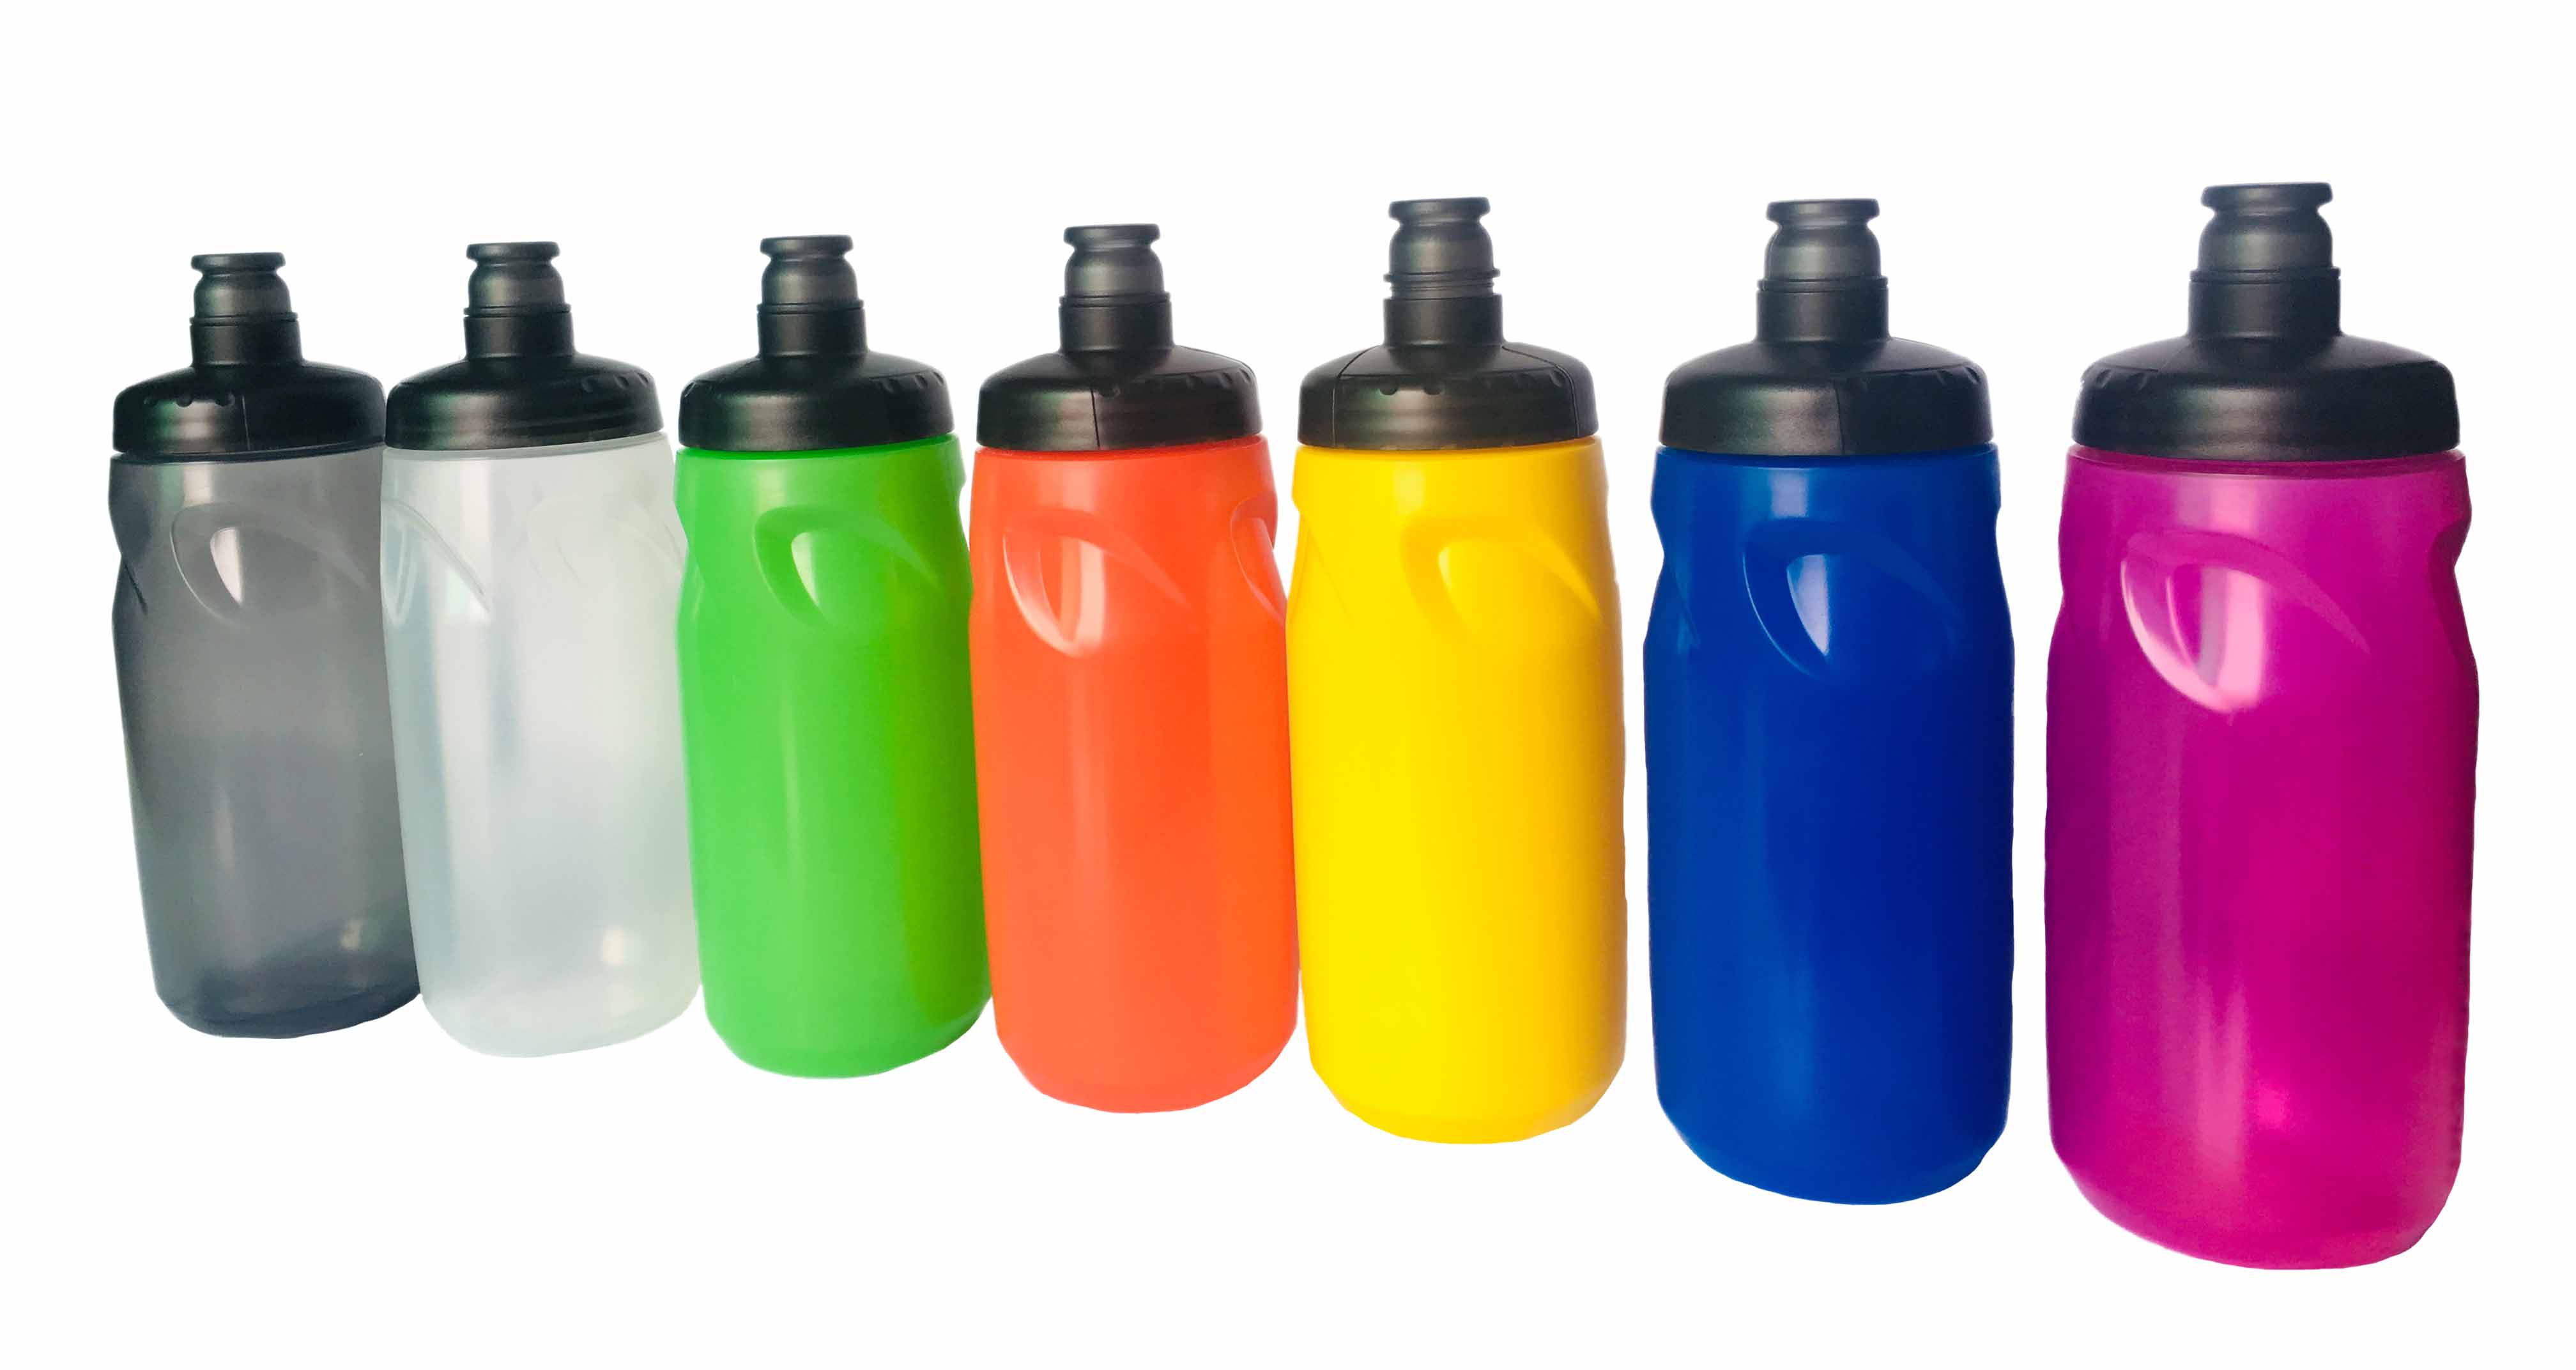 Yinxin Plastic-Professional Sports Water Bottle Cheap Custom Water Bottles Manufacture-6